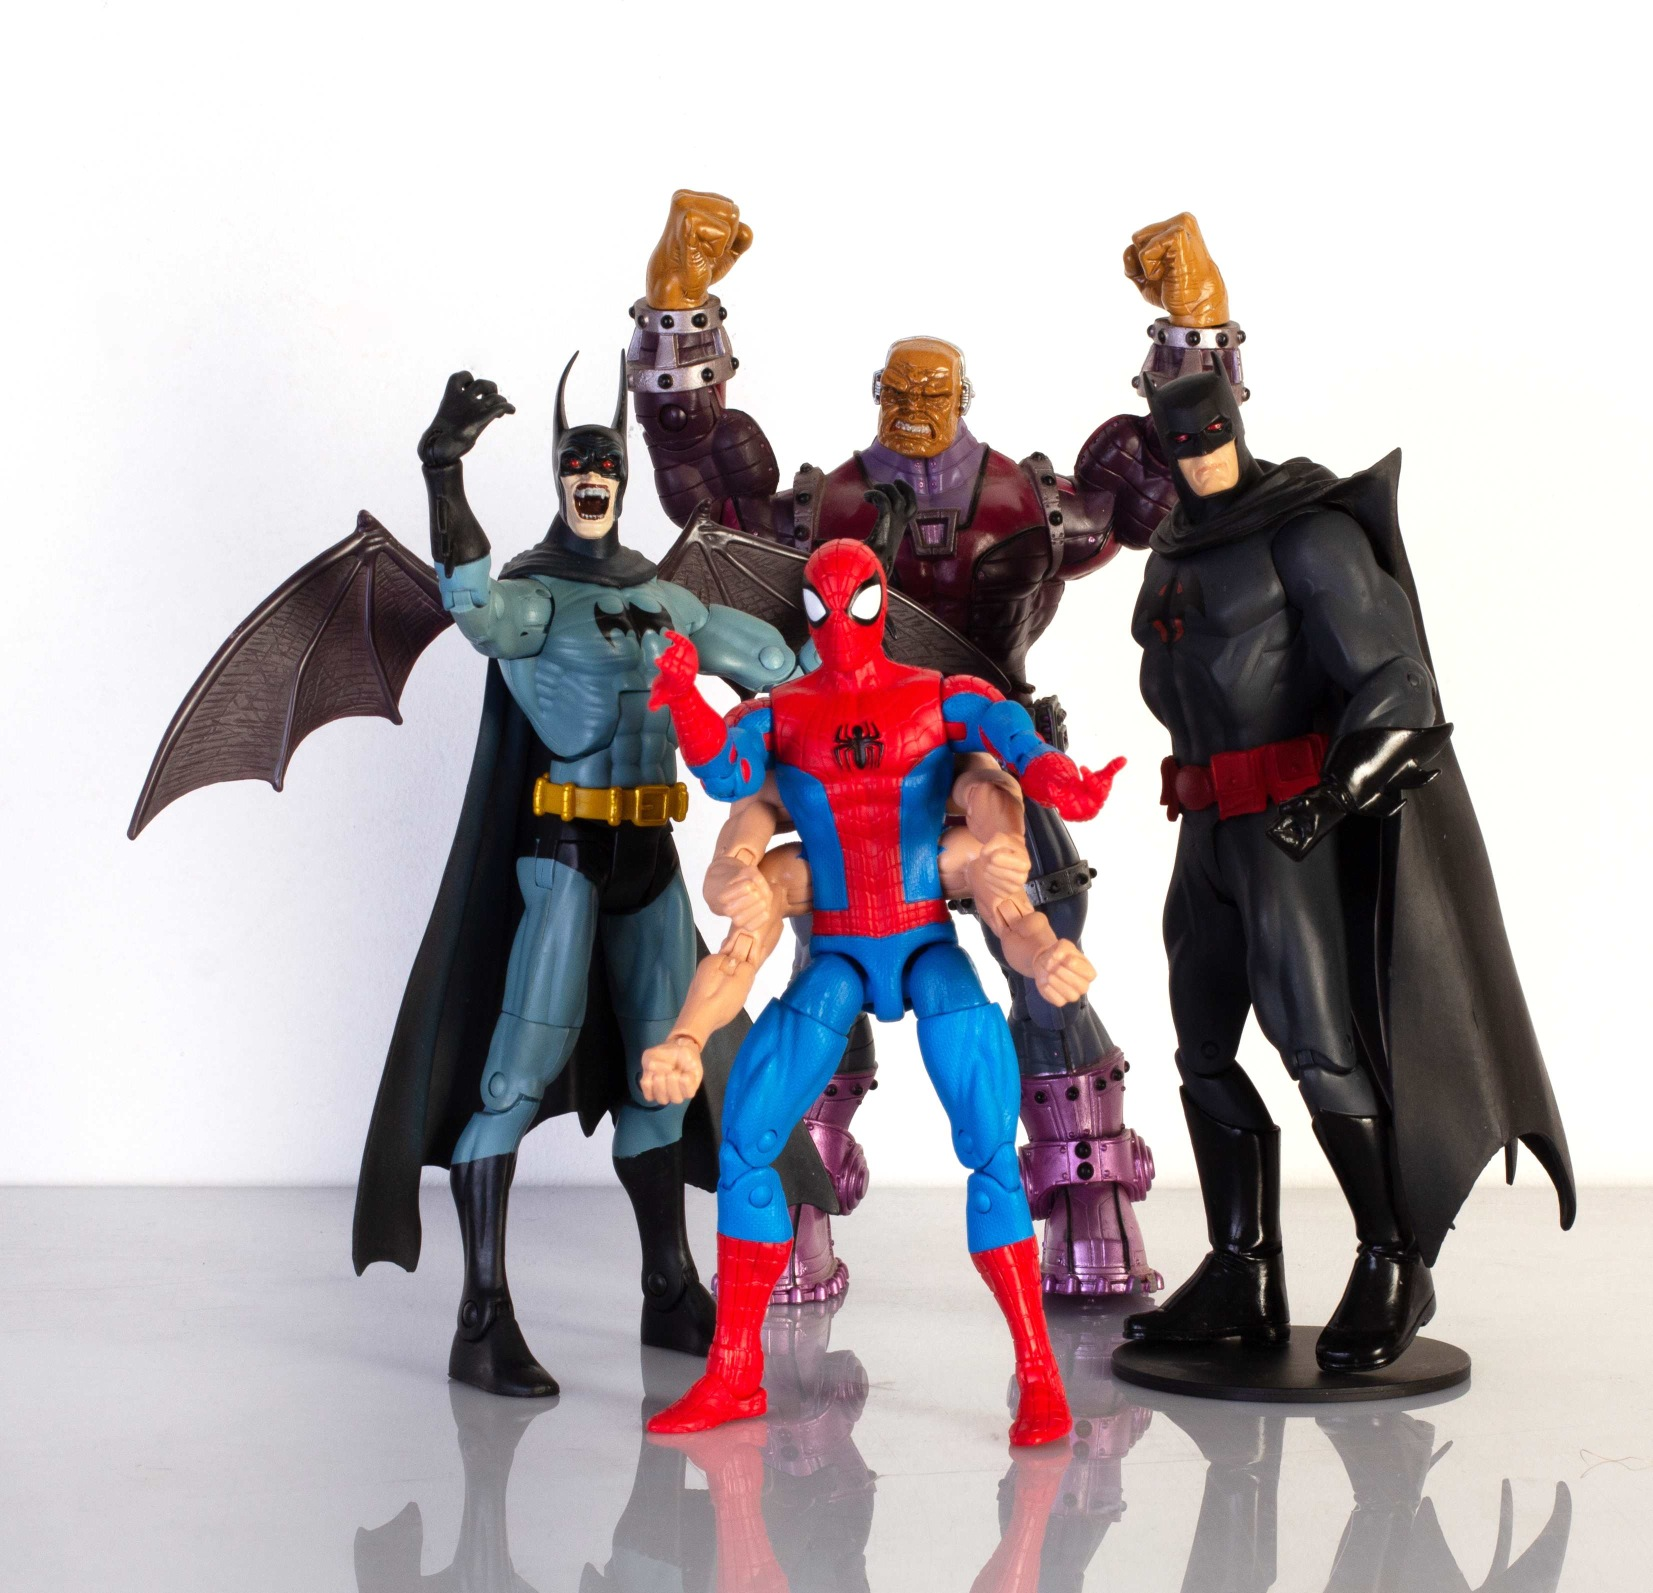 Marvel Legends Sixarms Spiderman vs. DC Vampire Batman, Direct Flashpoint Batman i Universe Mogul.